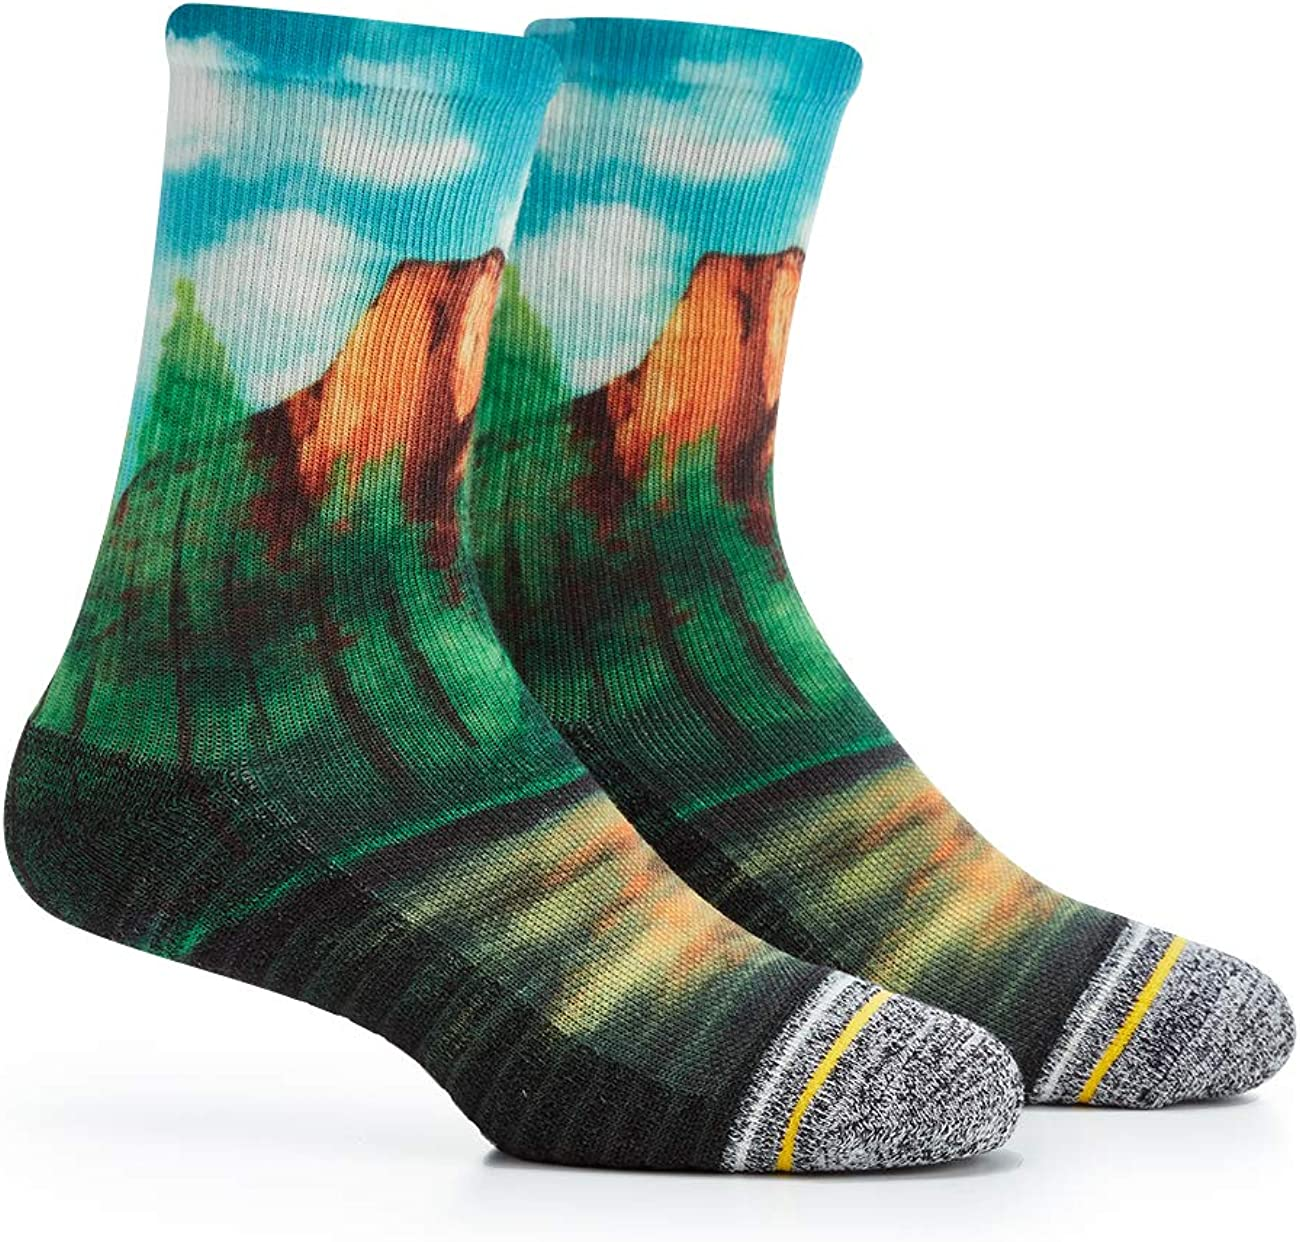 APRIME ECO-CAFE Crew Cushion Outdoor Socks Made from Coffee Grounds for Hiking, Trail Running, Climbing and Cycling